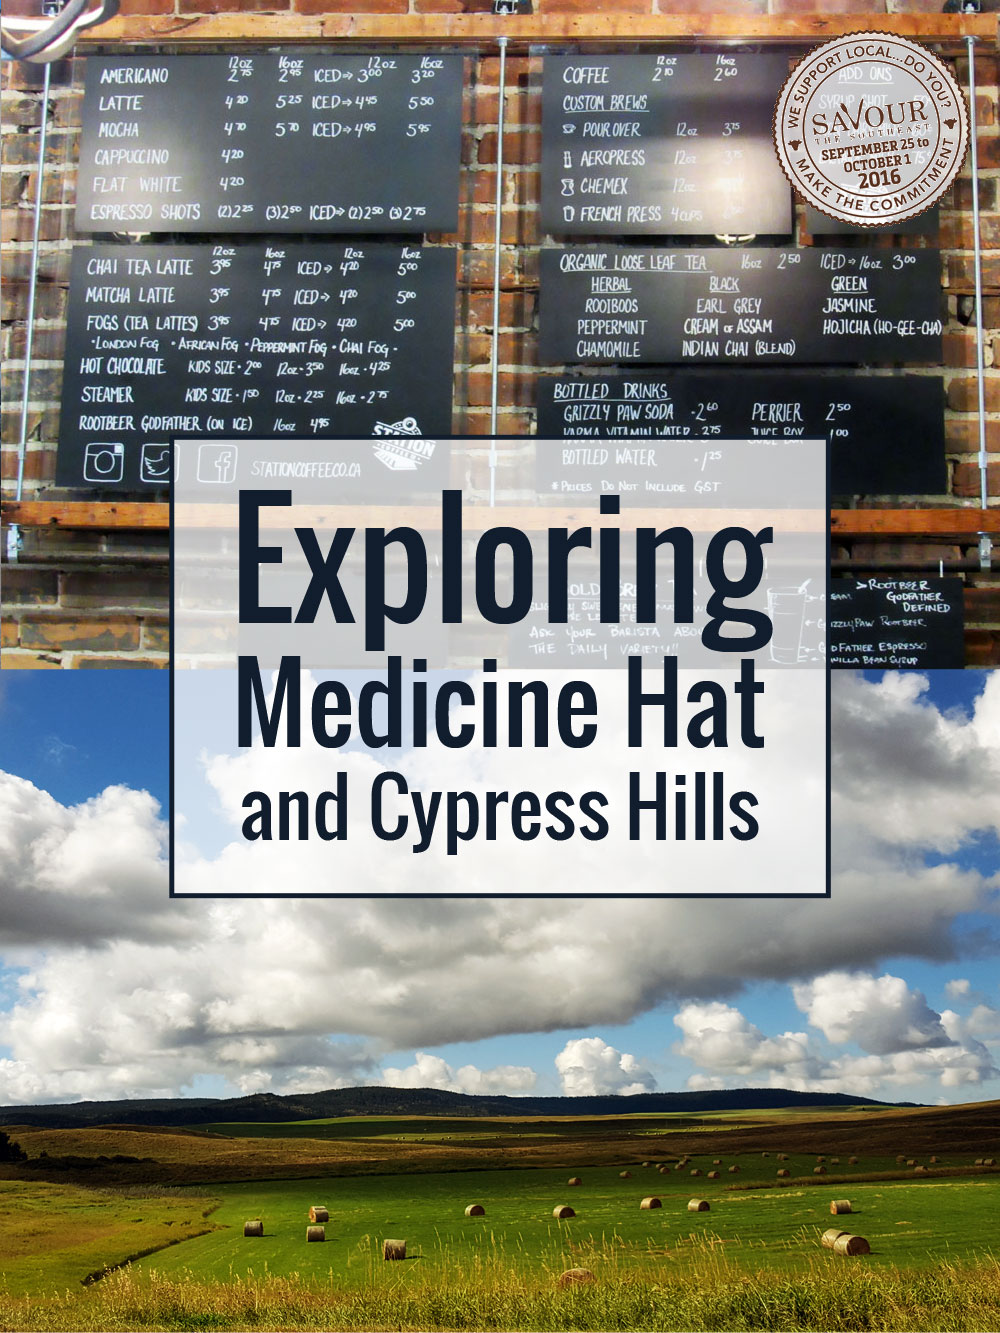 Exploring Medicine Hat and Cypress Hills